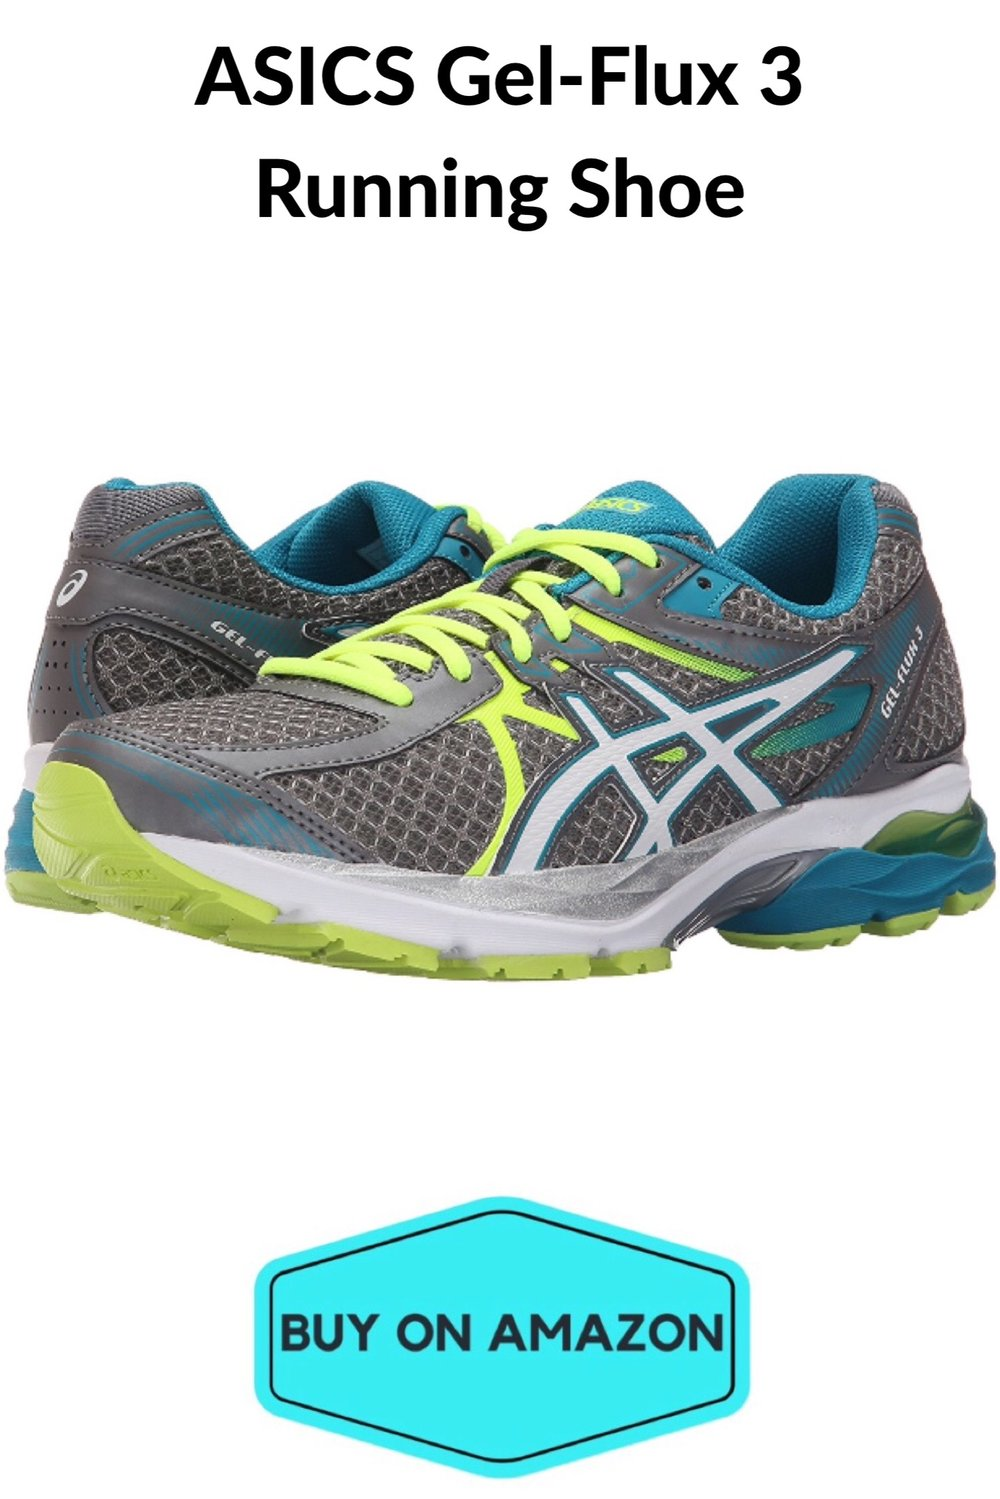 ASICS Gel-Flux 3 Women's Running Shoe